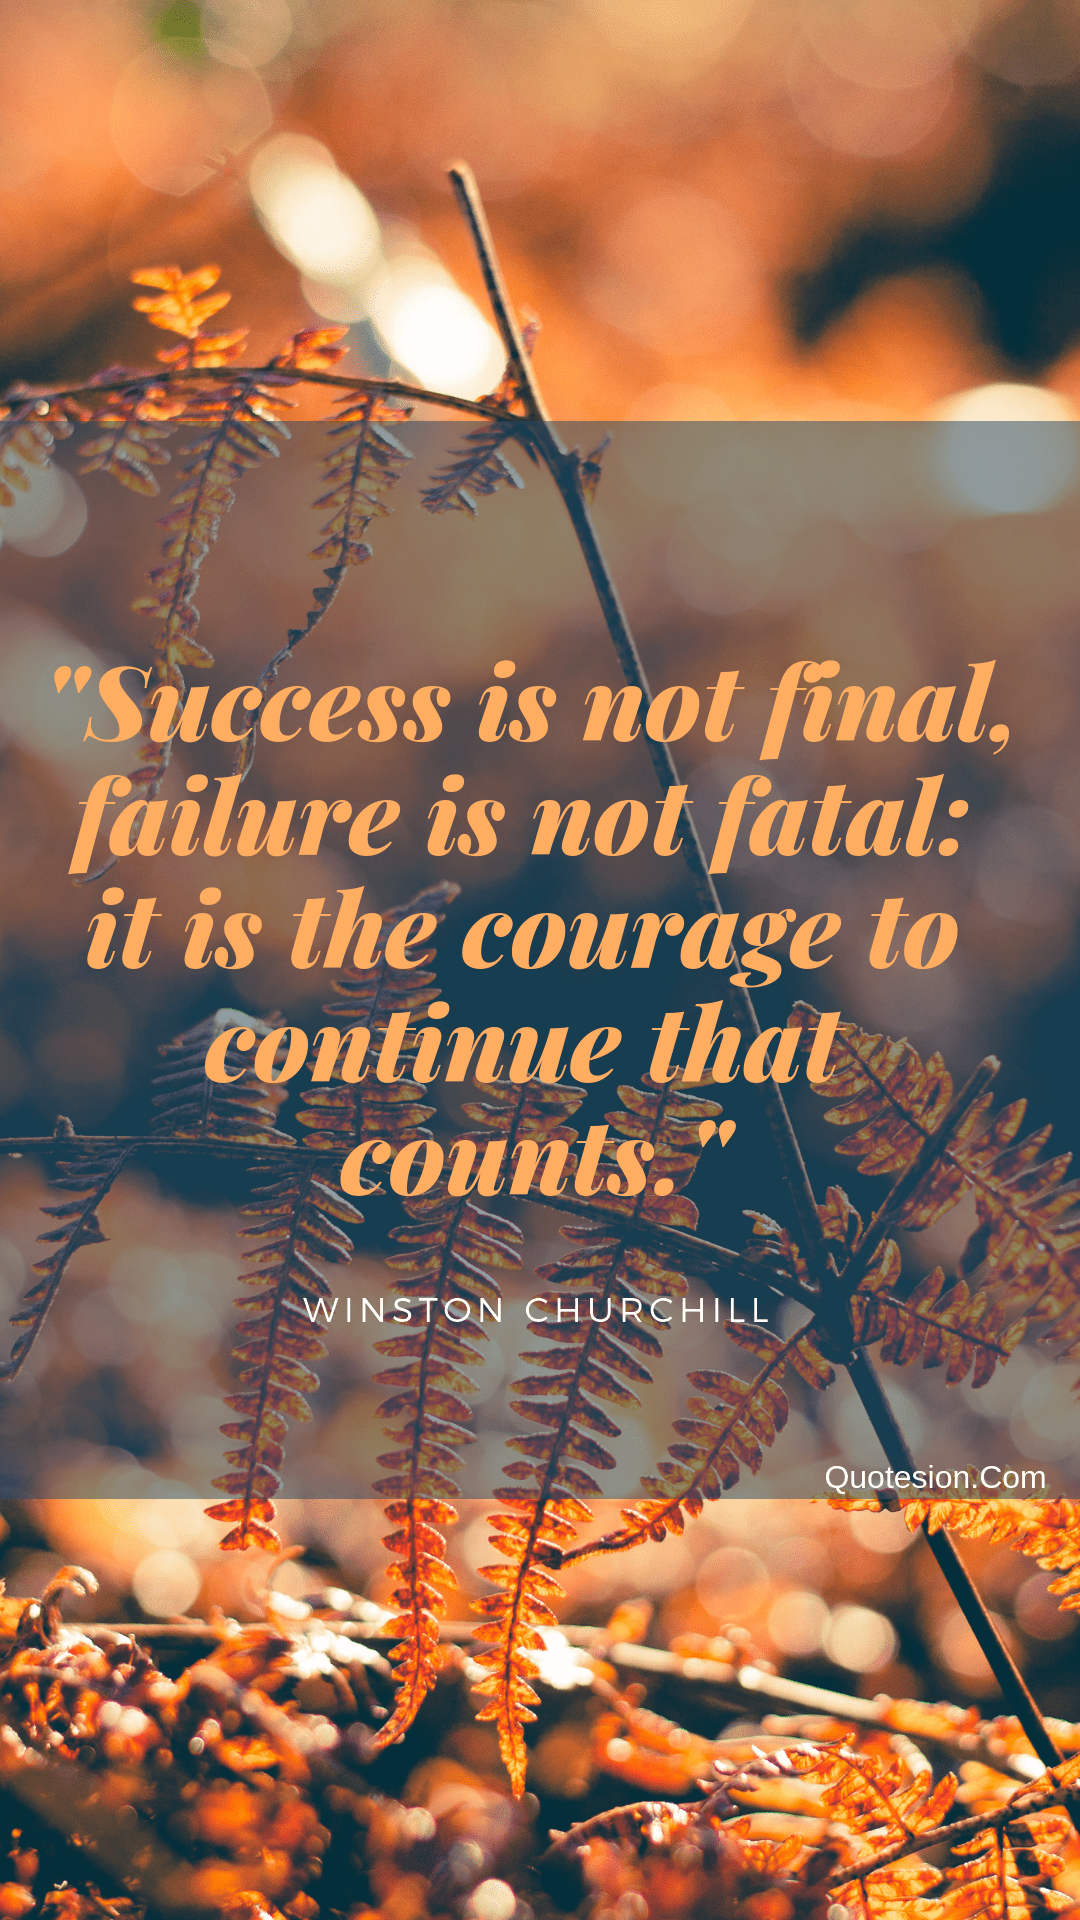 """Success is not final, failure is not fatal: it is the courage to continue that counts"" -Winston Churchill- [1920×1080]"